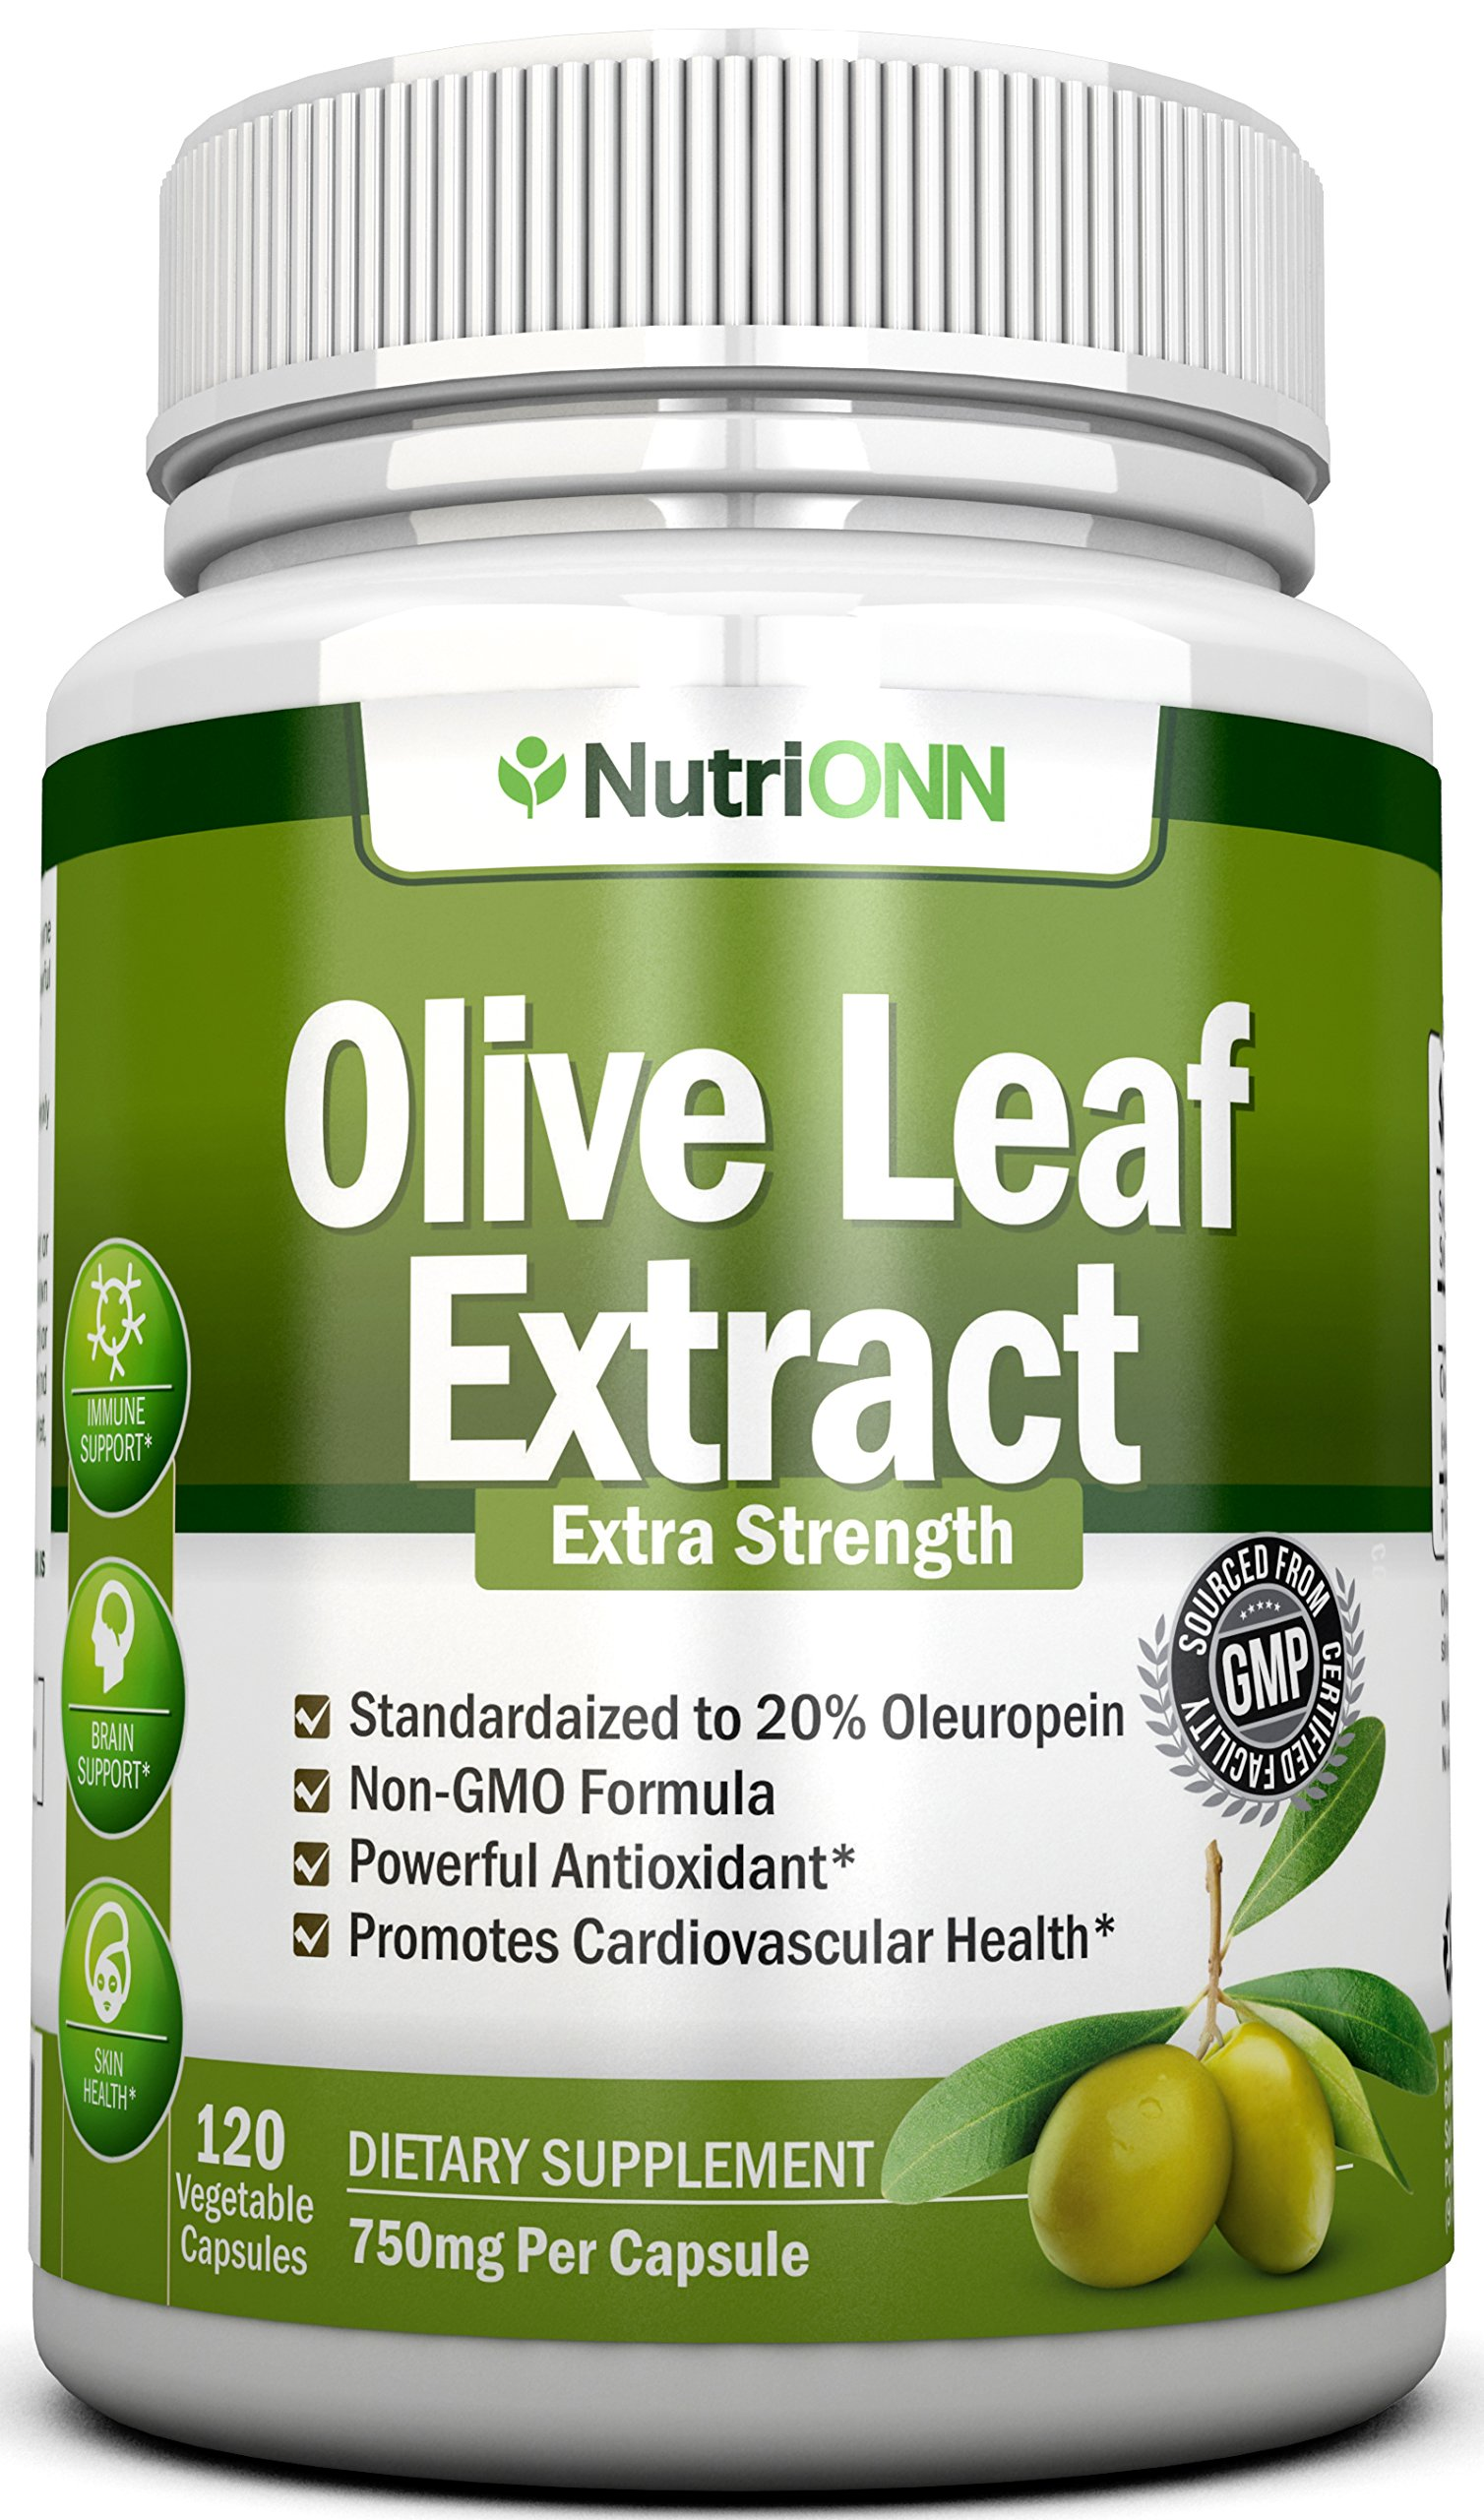 Olive Leaf Extract - 750 Mg - 120 Capsules - Extra Strength - 20% Oleuropein - Non-GMO Formula - Highest Quality From Pure Olive Leaves - Powerful Antioxidant - Great for Heart, Skin and Immune System